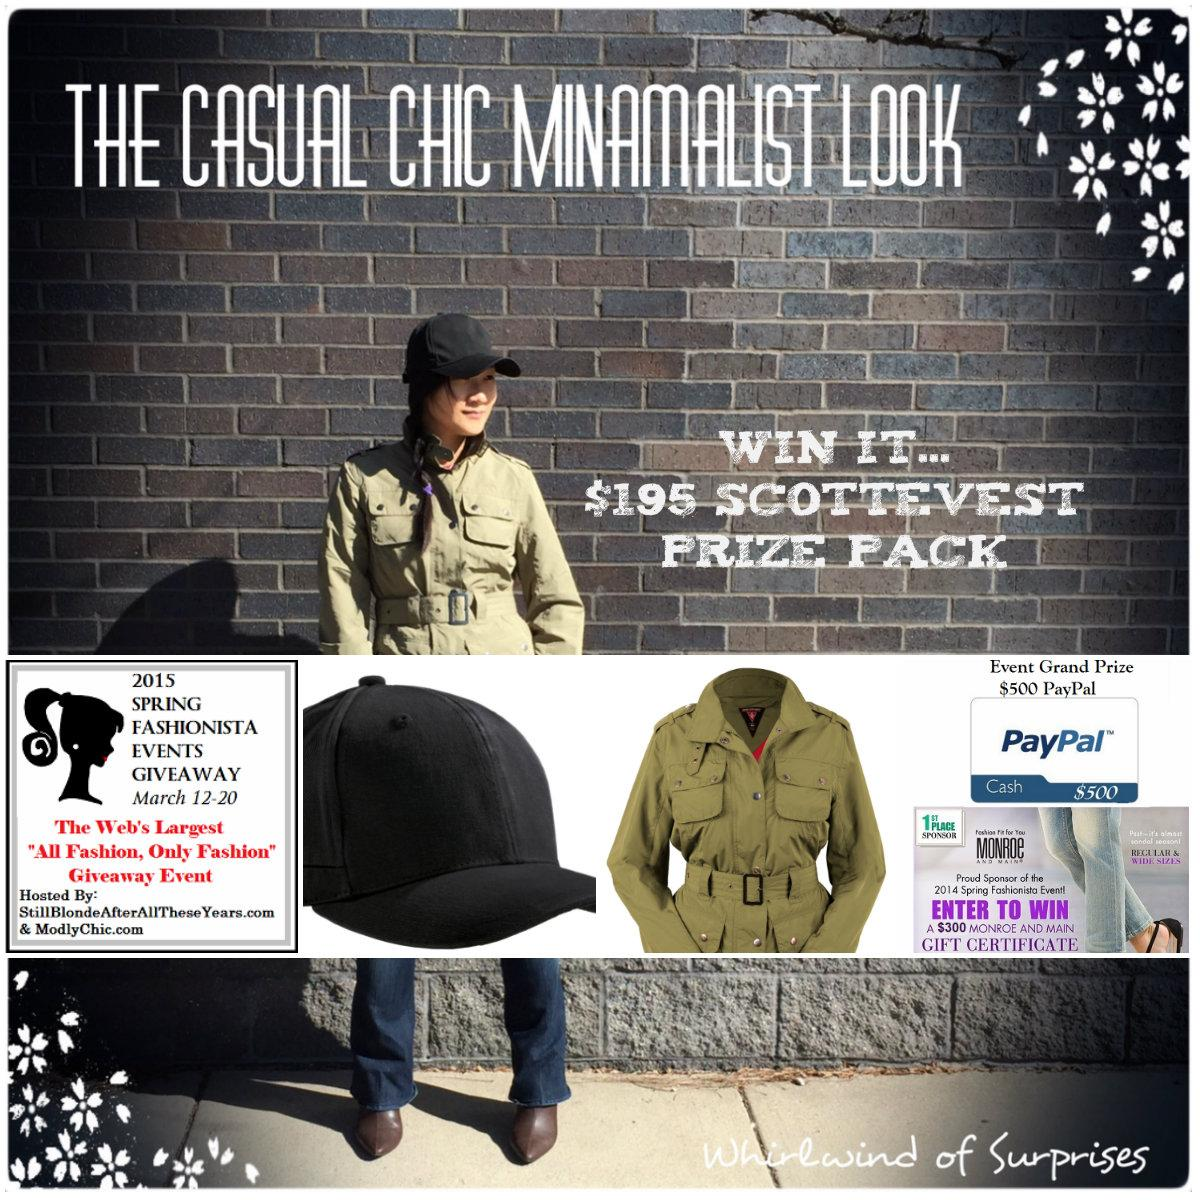 Spring Fashionista Scottevest Giveaway